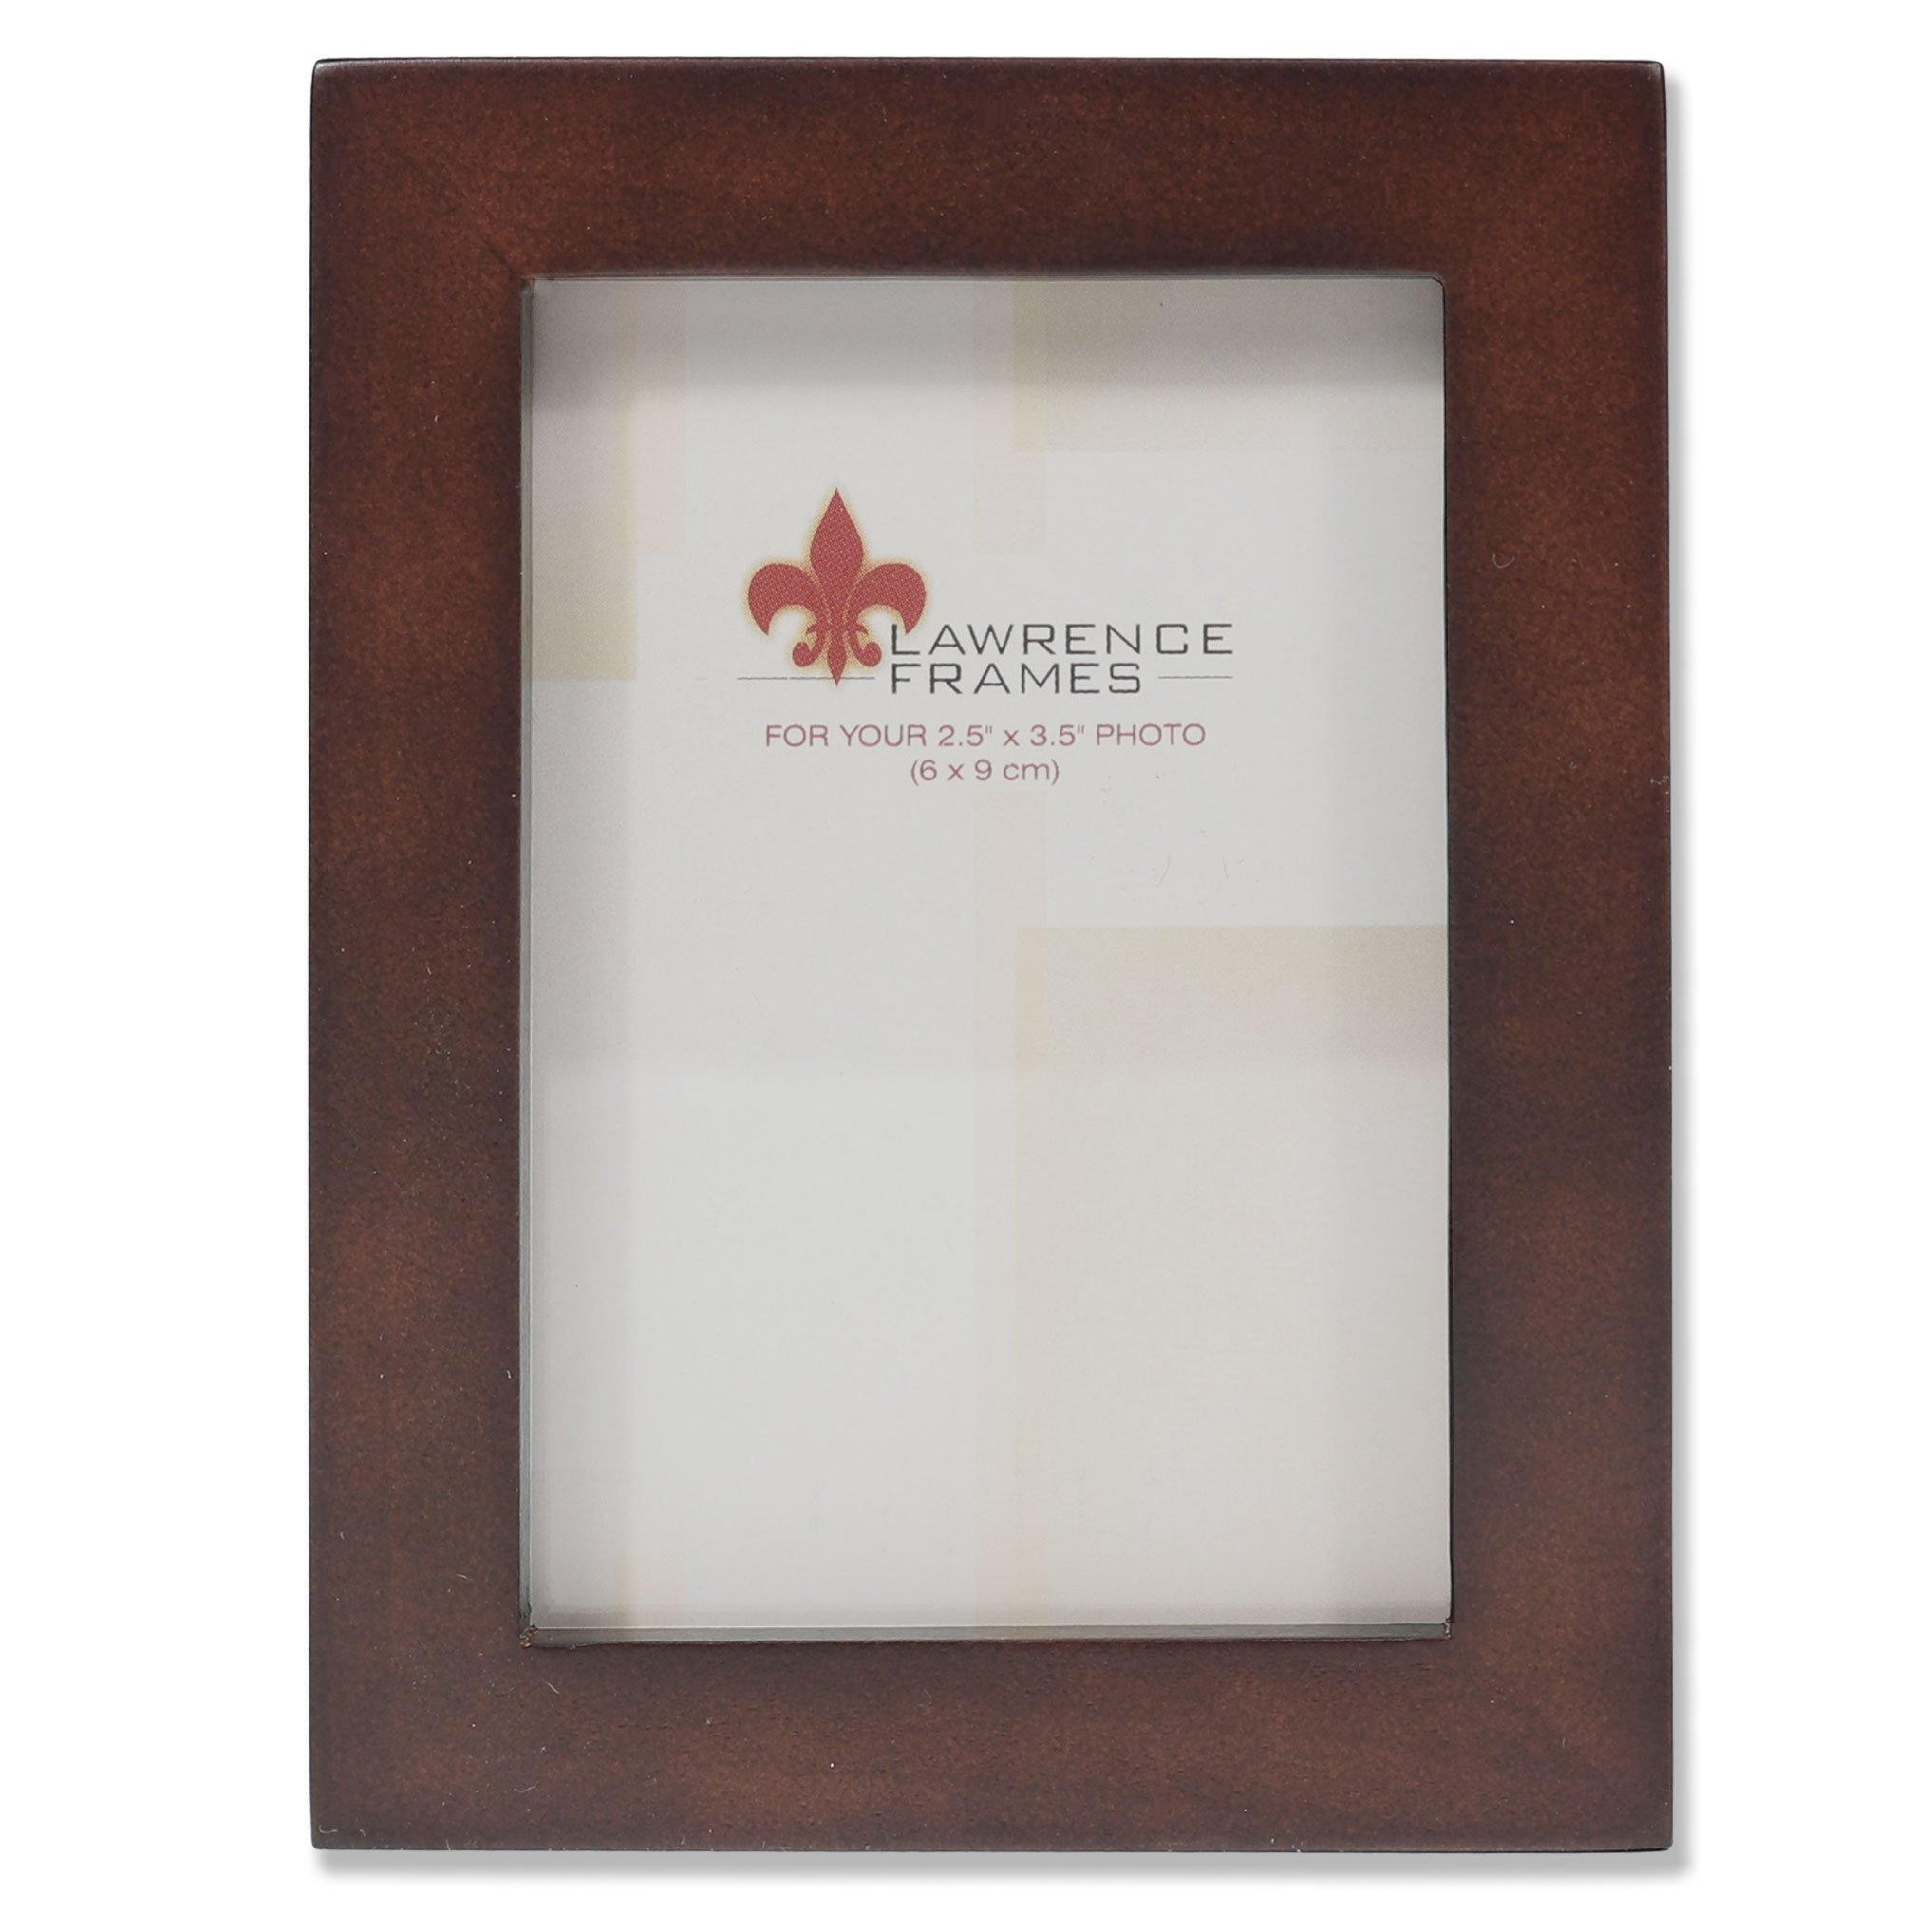 Lawrence Frames 755923 Espresso Wood Picture Frame, 2.5 by 3.5-Inch